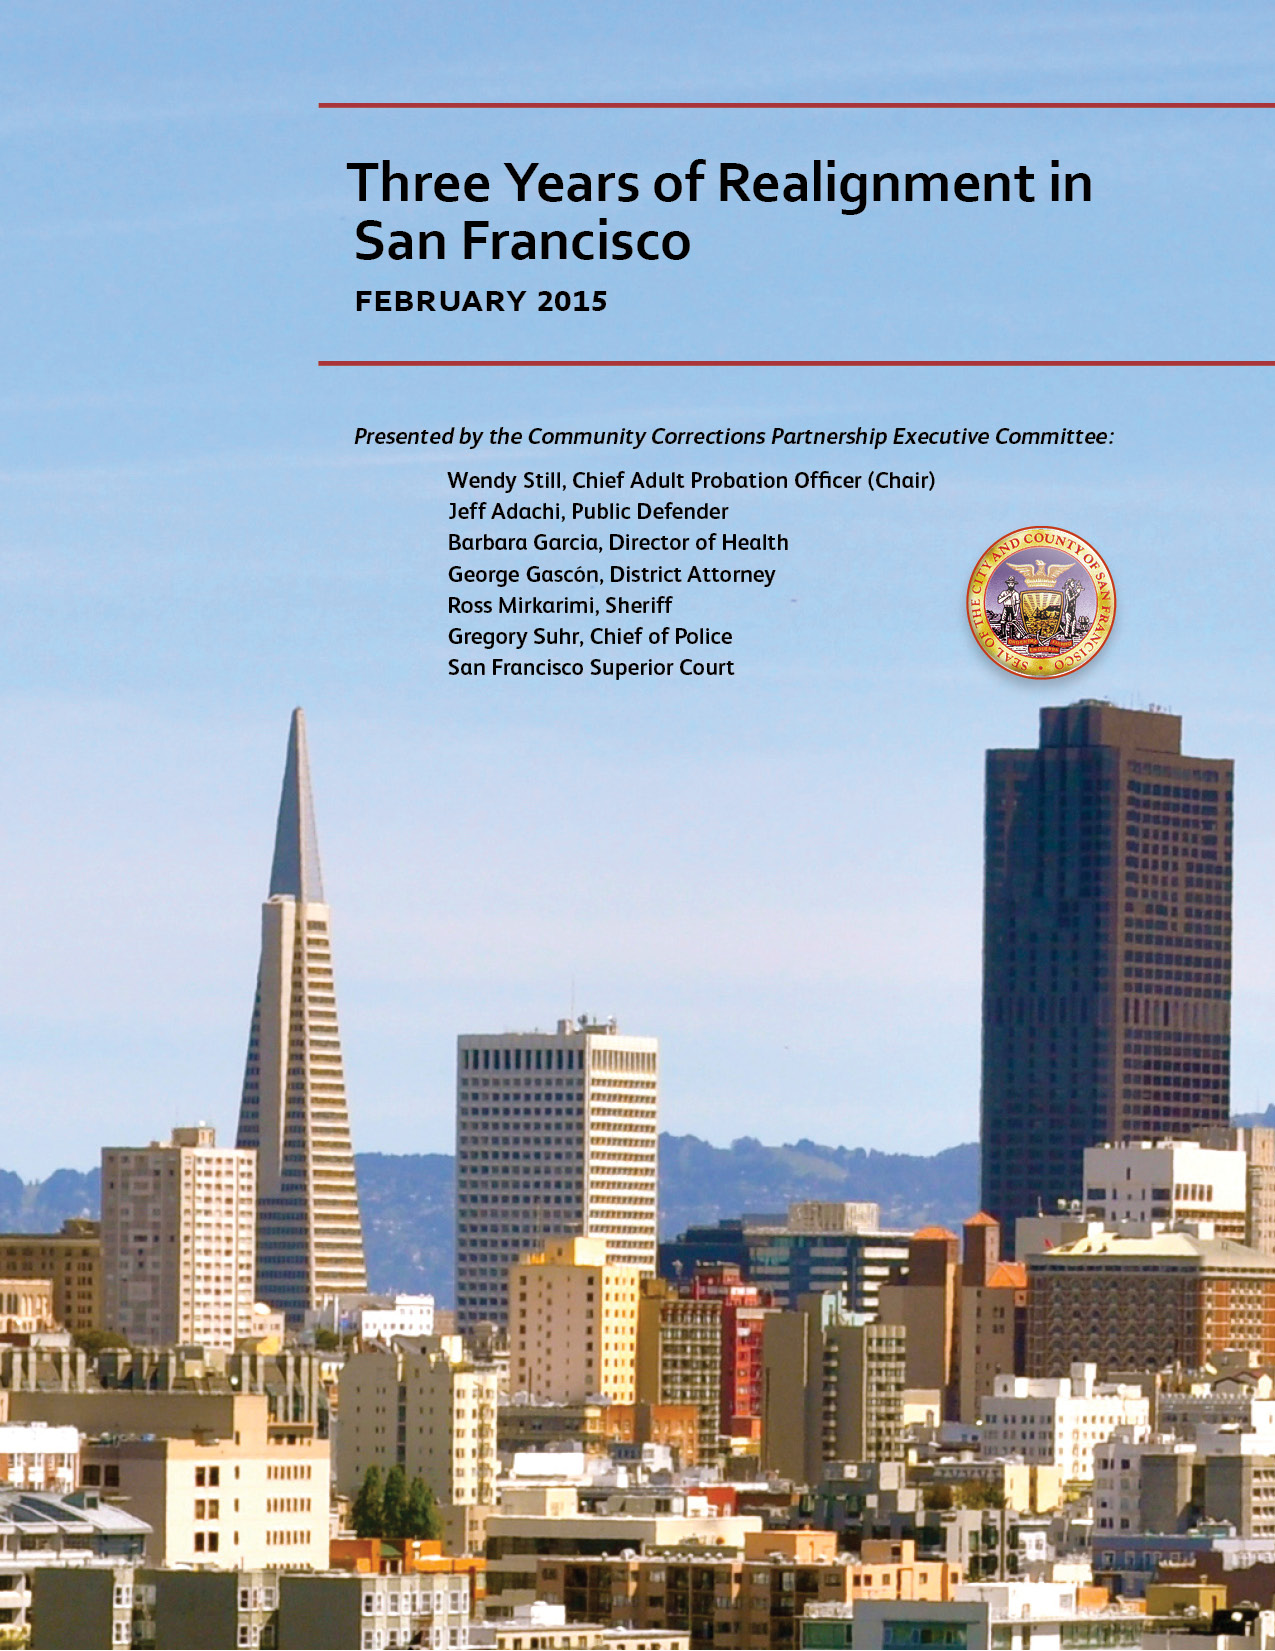 Three Years of Realignment in San Francisco